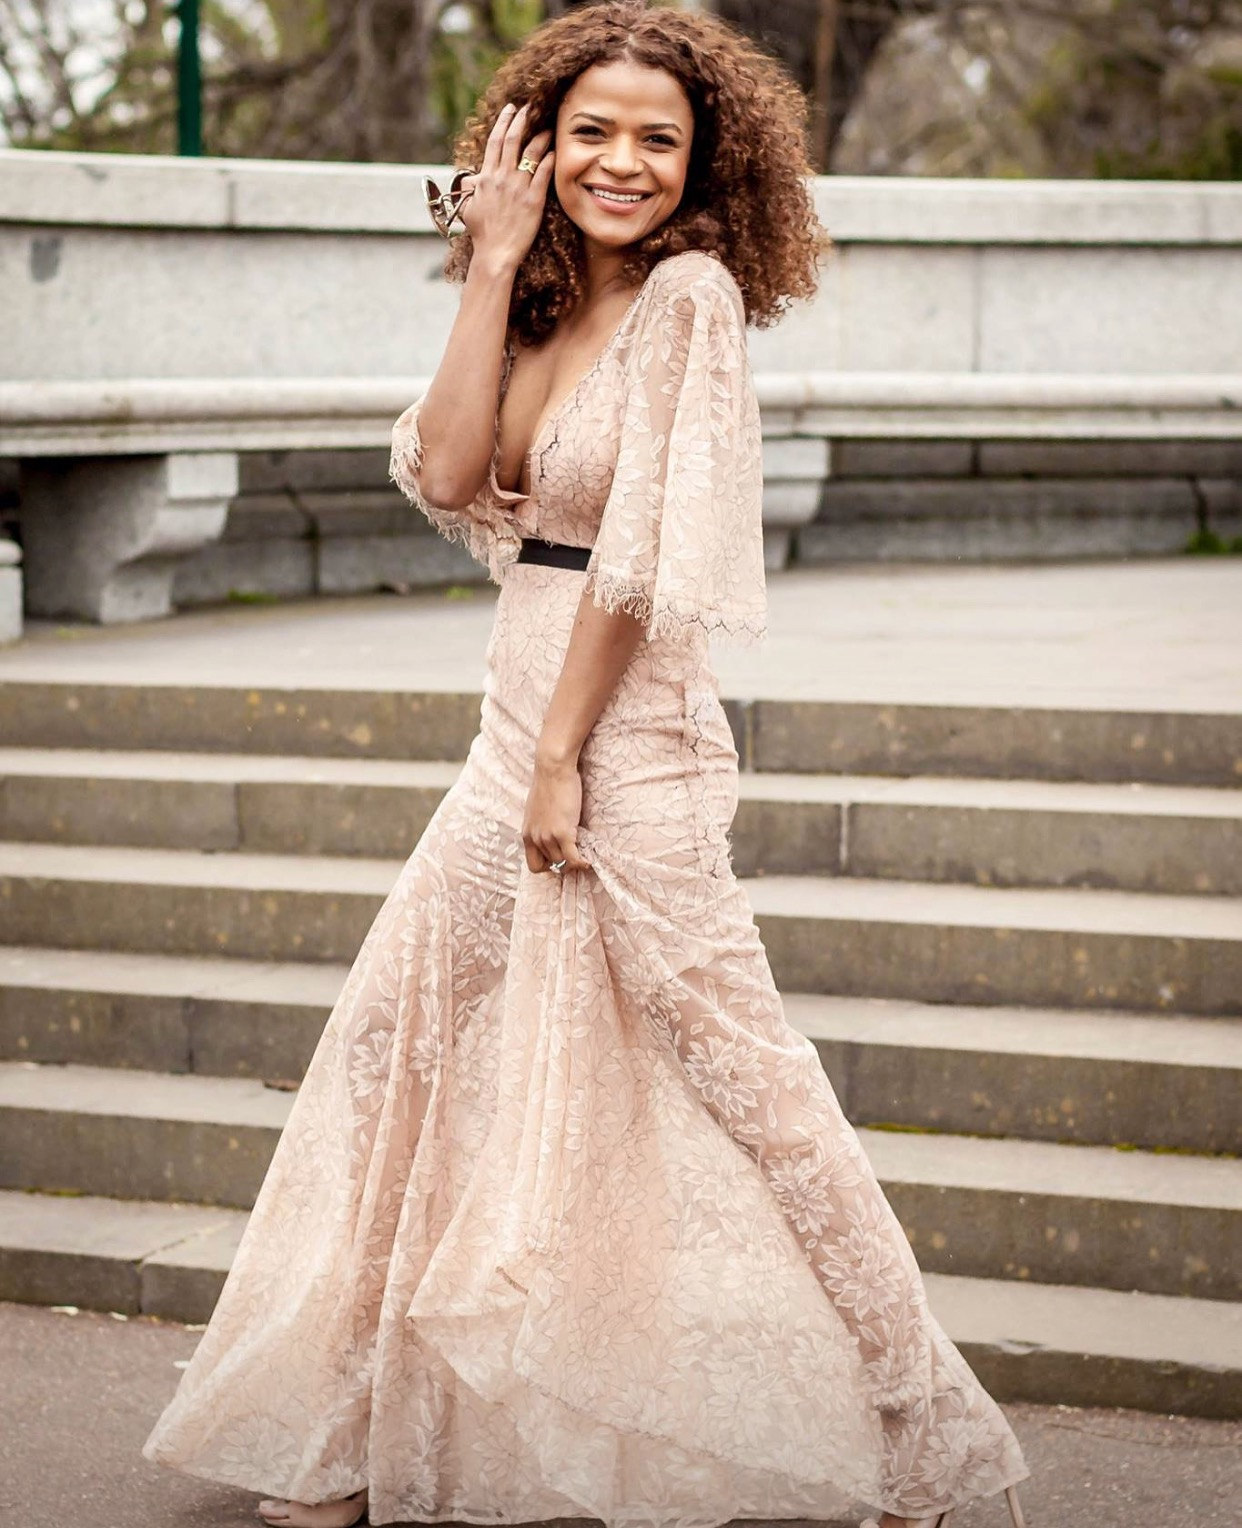 Victoria Latu, Talking shop with Victoria Latu, How to be stylish this summer, Style tips for 2017,